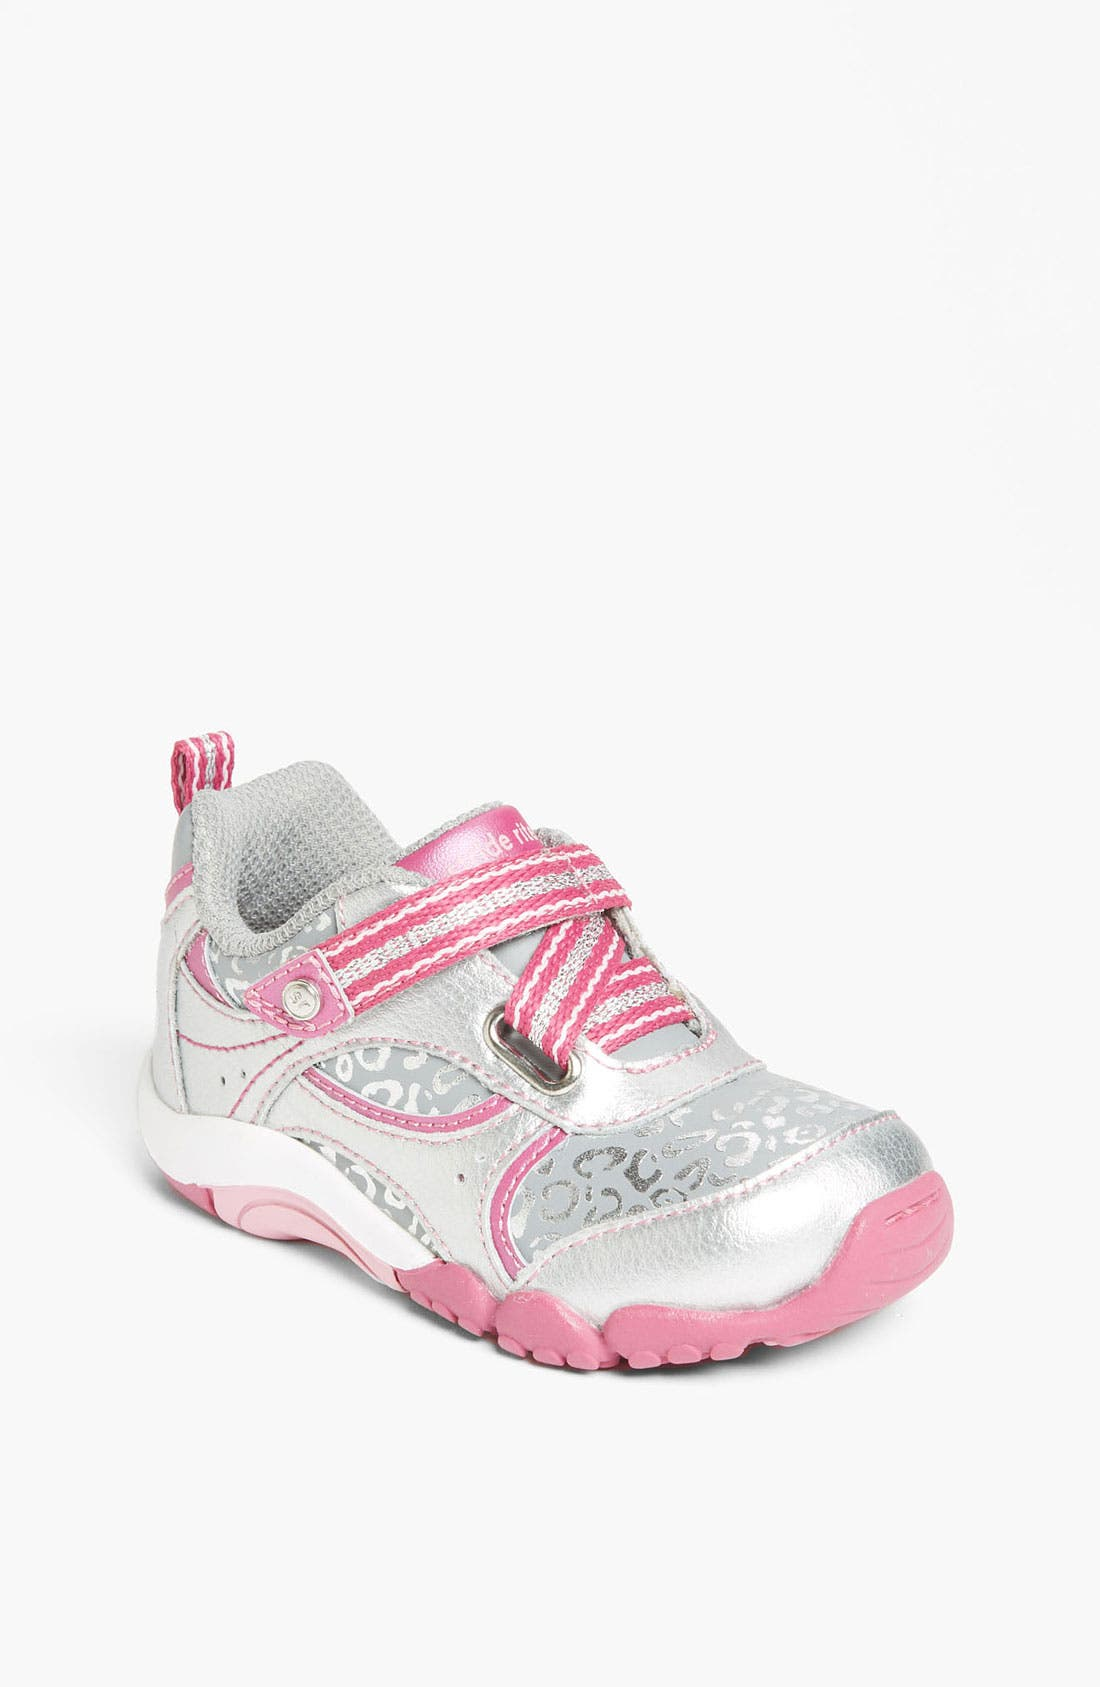 Alternate Image 1 Selected - Stride Rite 'Misty' Sneaker (Baby, Walker & Toddler)